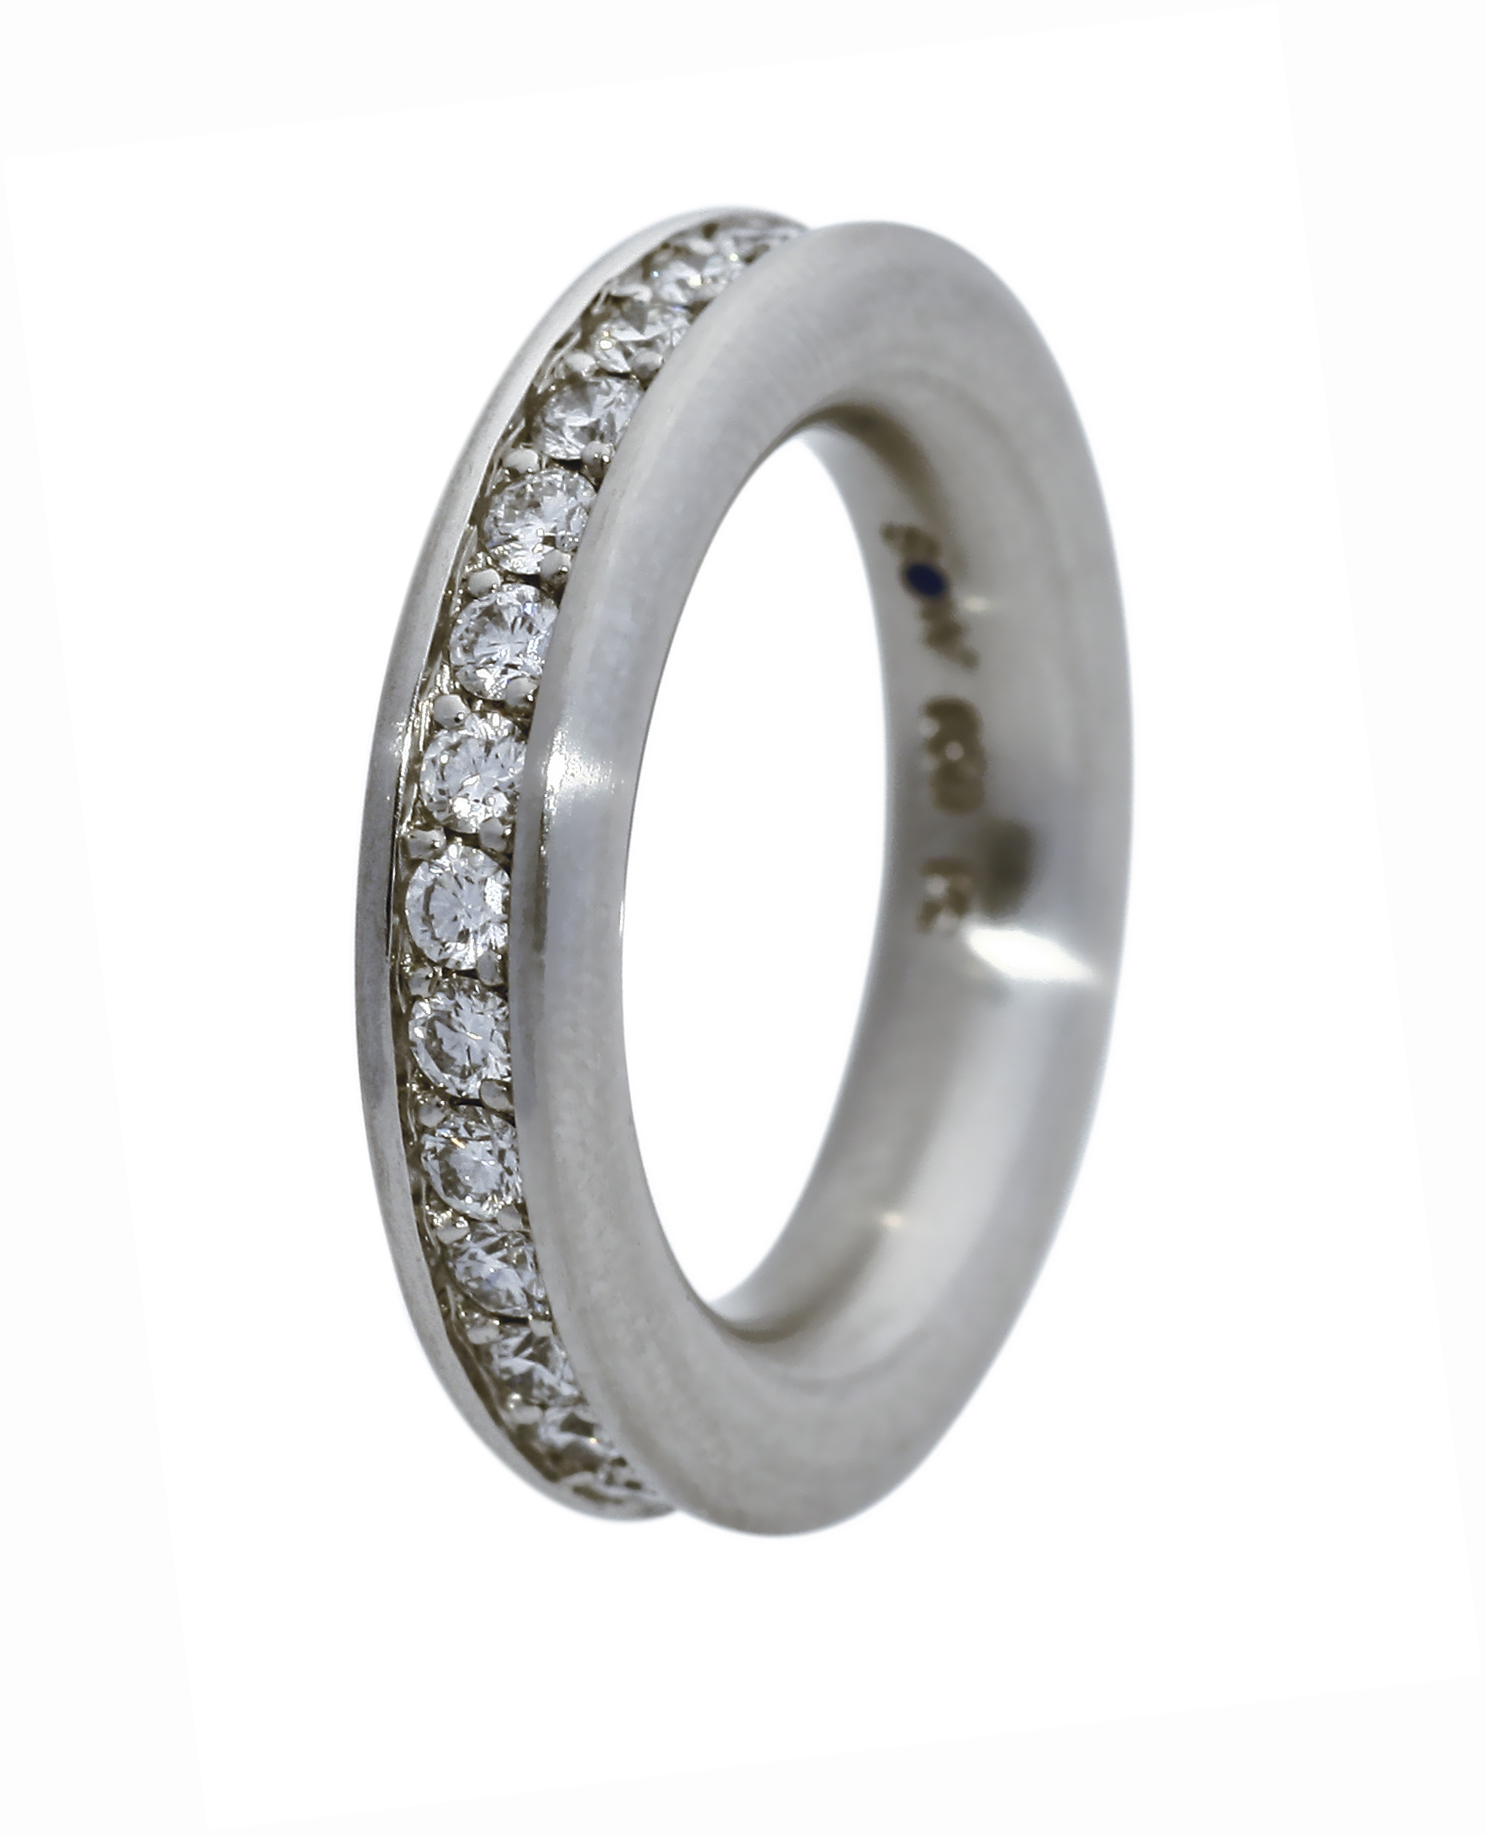 Bague en or blanc brossé 30 diamants